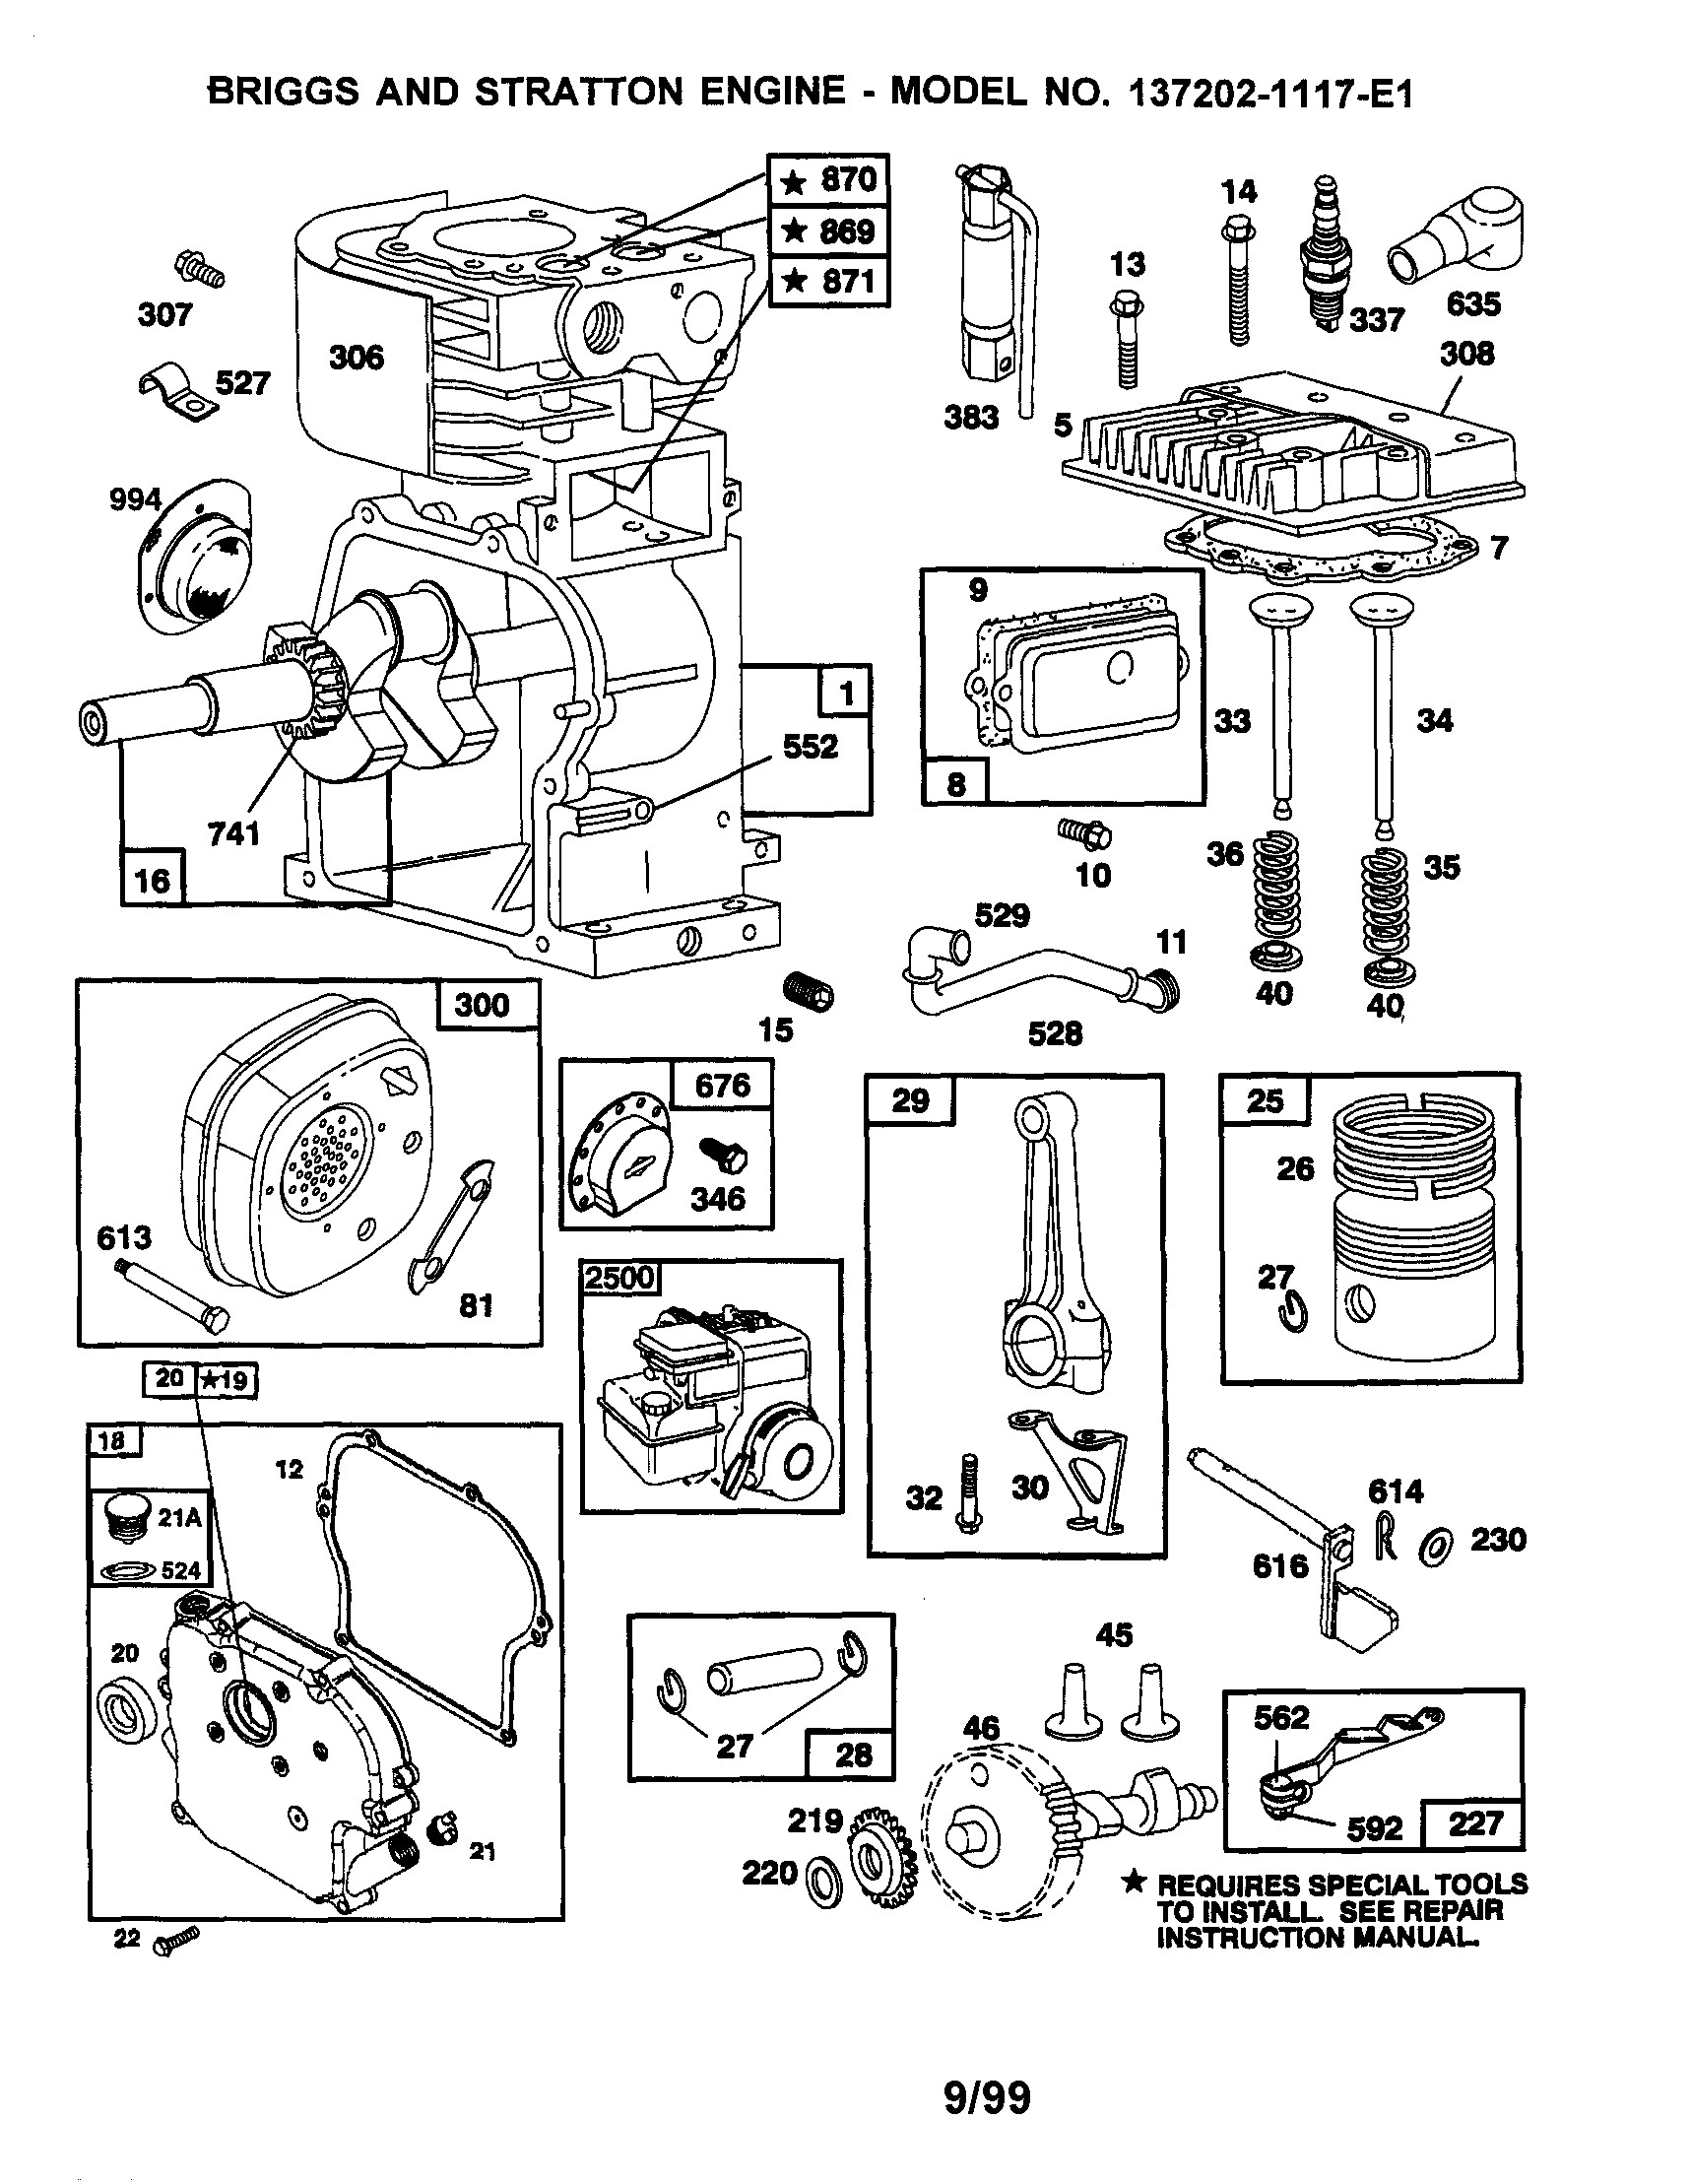 Best Briggs And Stratton 550 Series Carburetor Diagram Amp Ec84 Roccommunity